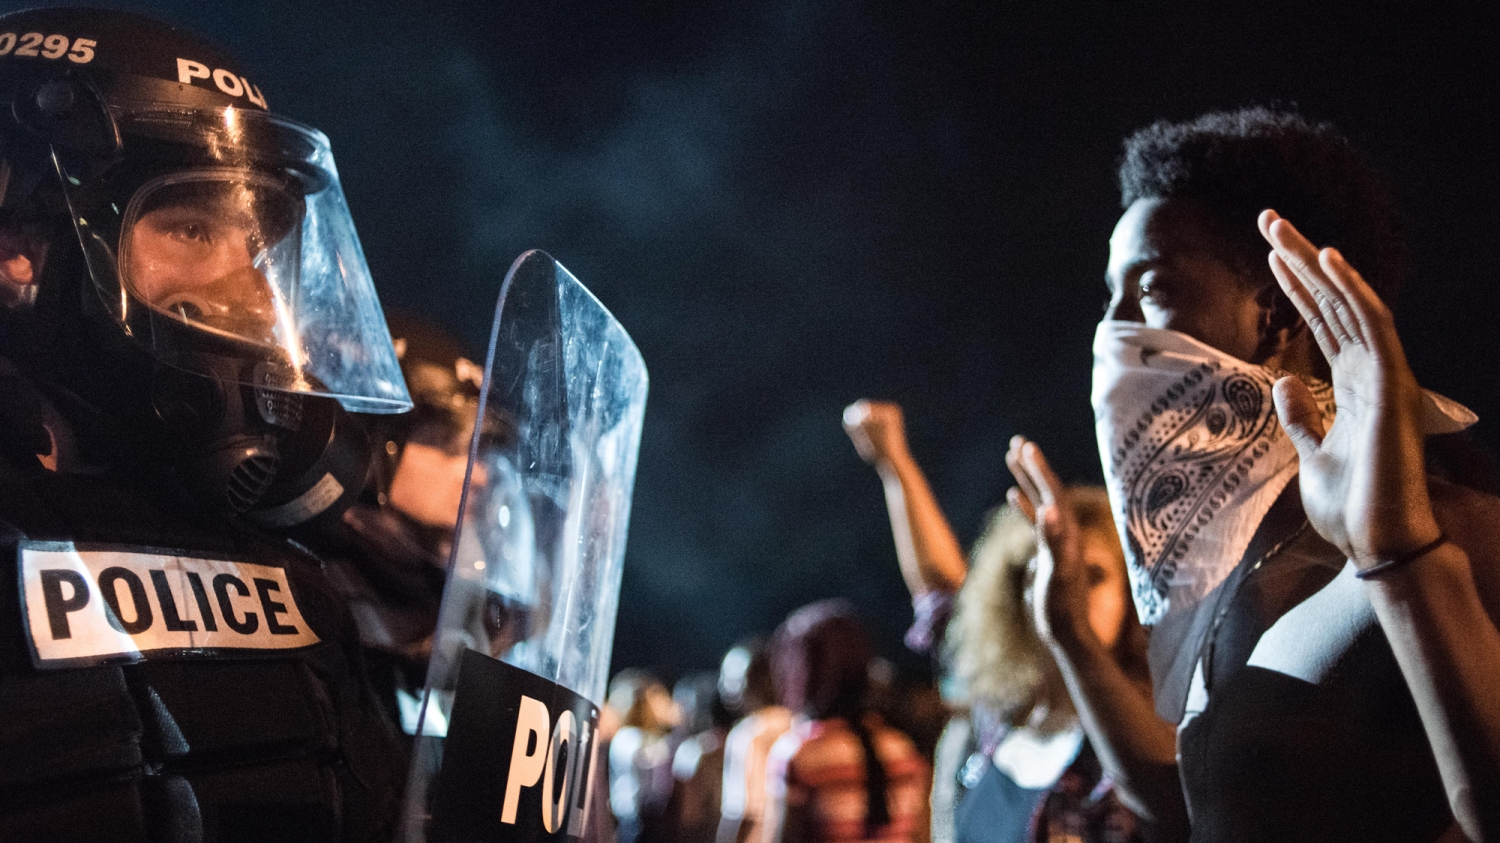 c72da105eff Police officers face off with protestors on the I-85 (Interstate 85) during  protests following the death of a man shot by a police officer on September  21, ...